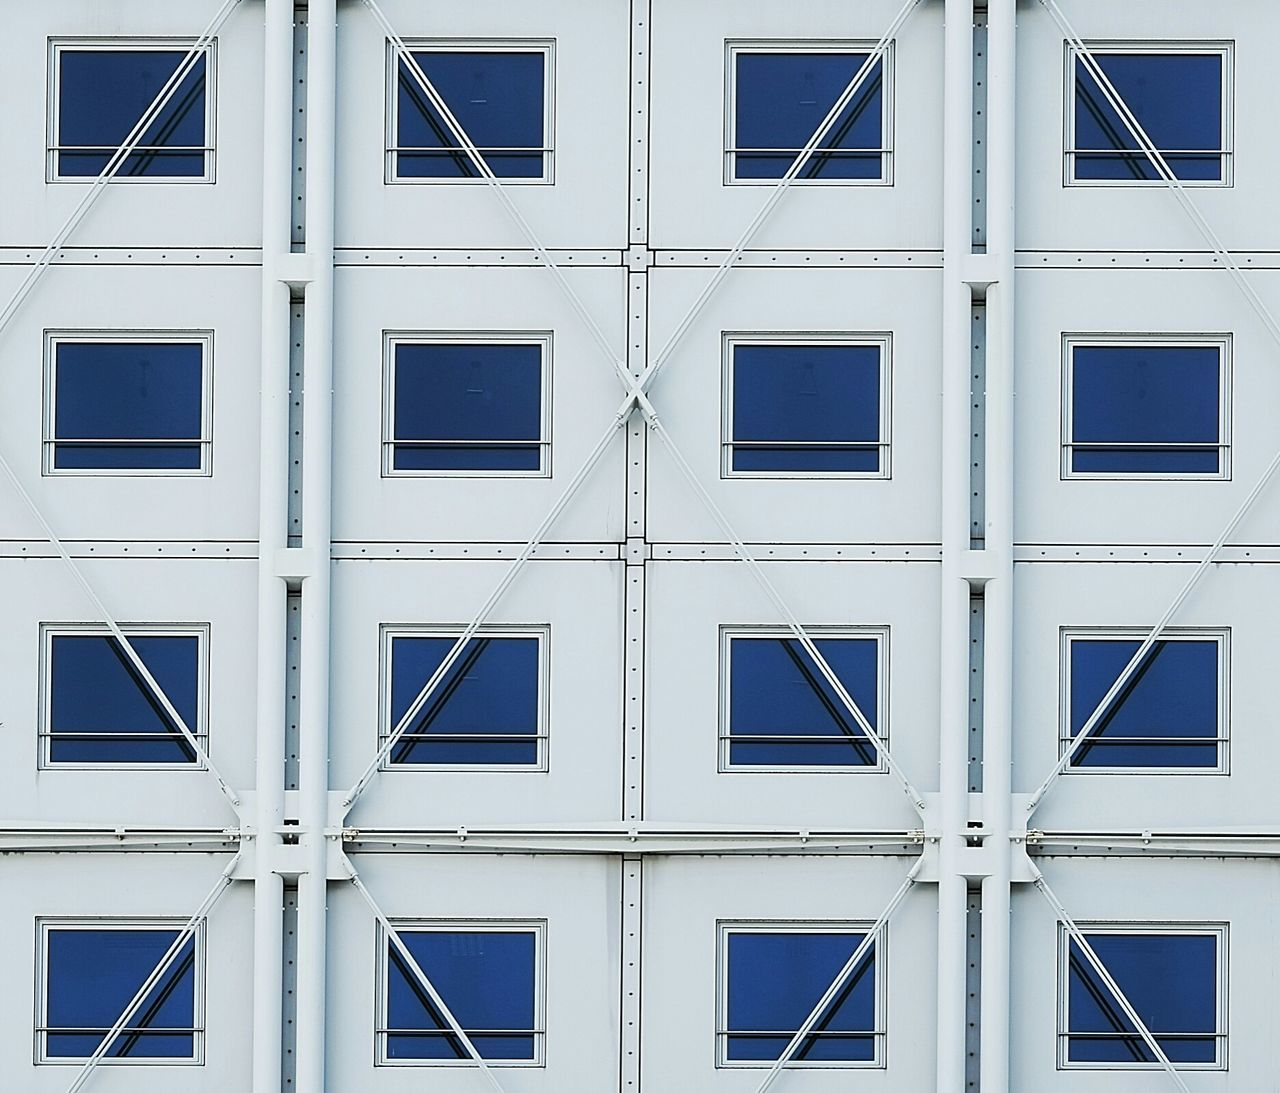 Whitebluefacade Deceptively Simple Architecture Minimalism Simplicity Urban Geometry Urbanphotography Cityexplorer Geometric Shapes From My Point Of View Façade